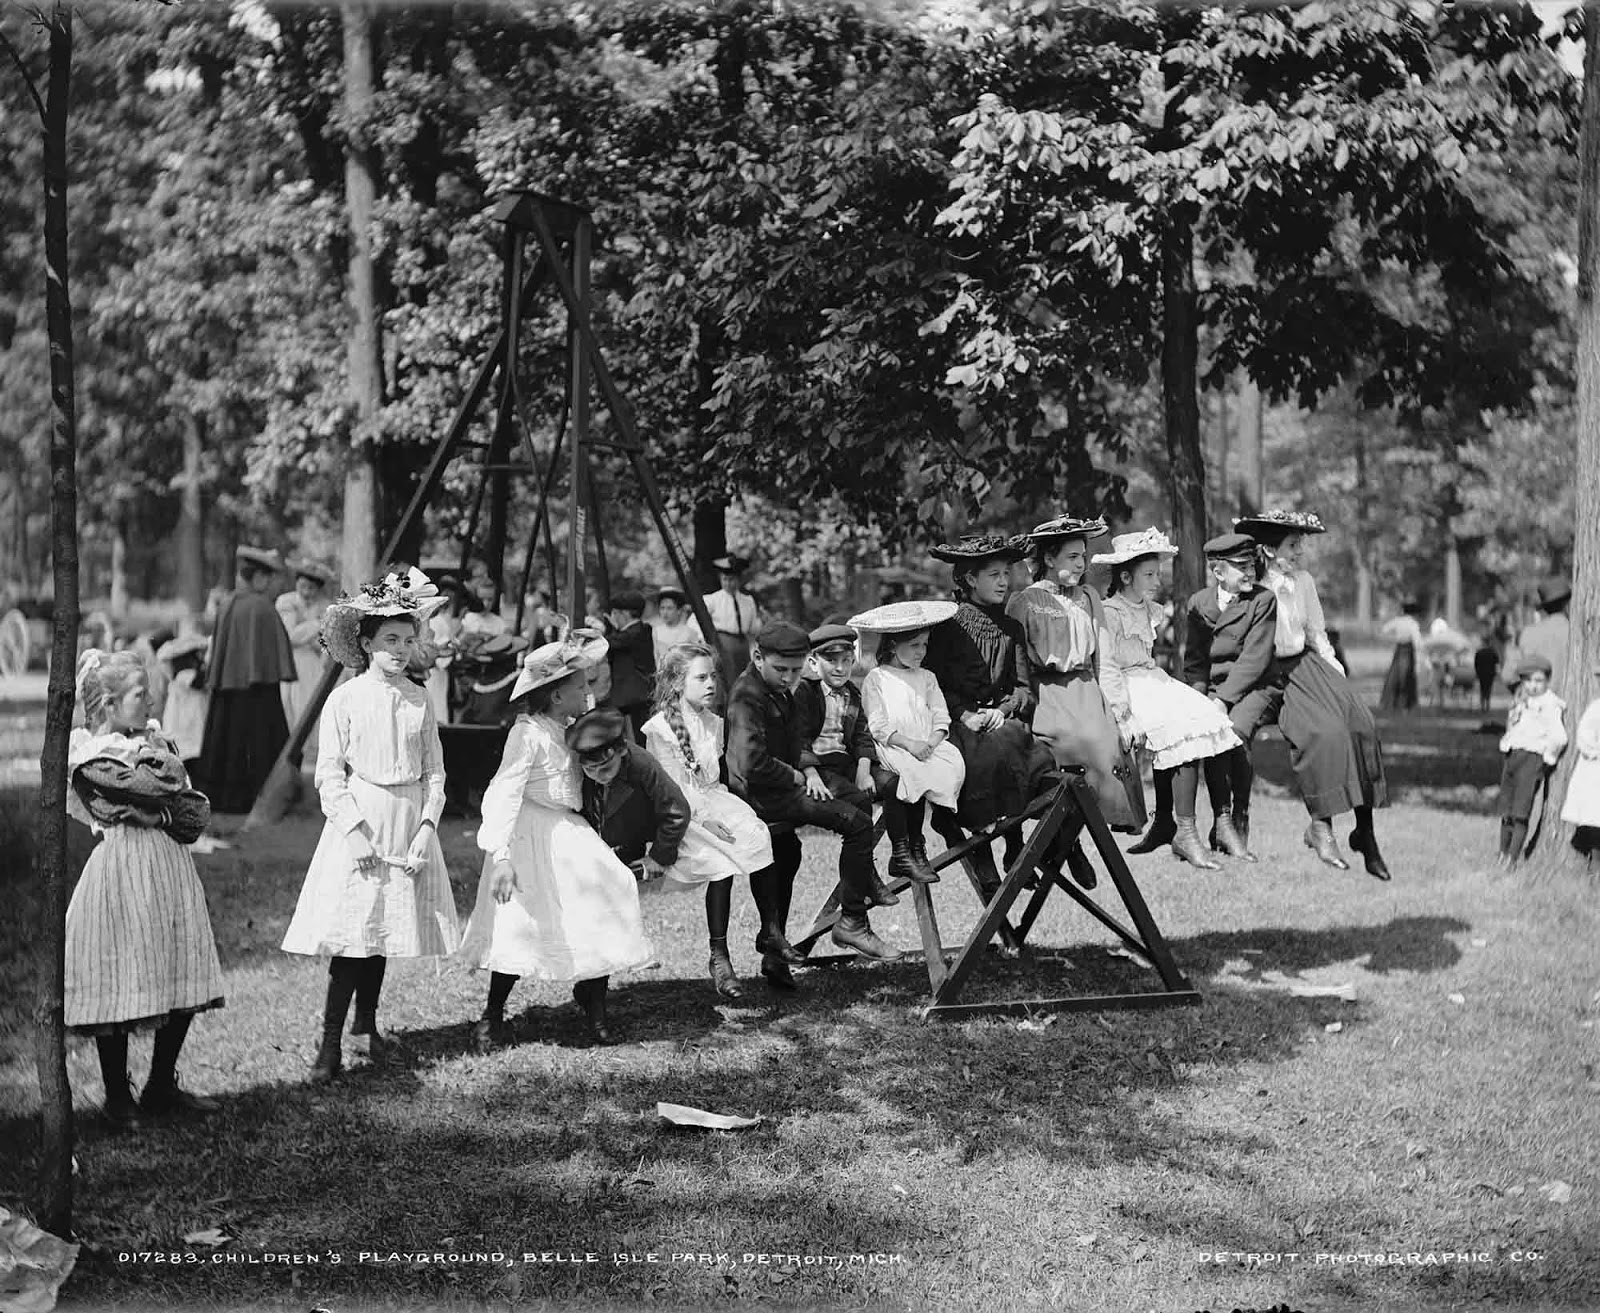 Children's playground, Belle Isle Park, Detroit, Michigan. 1900-1905.